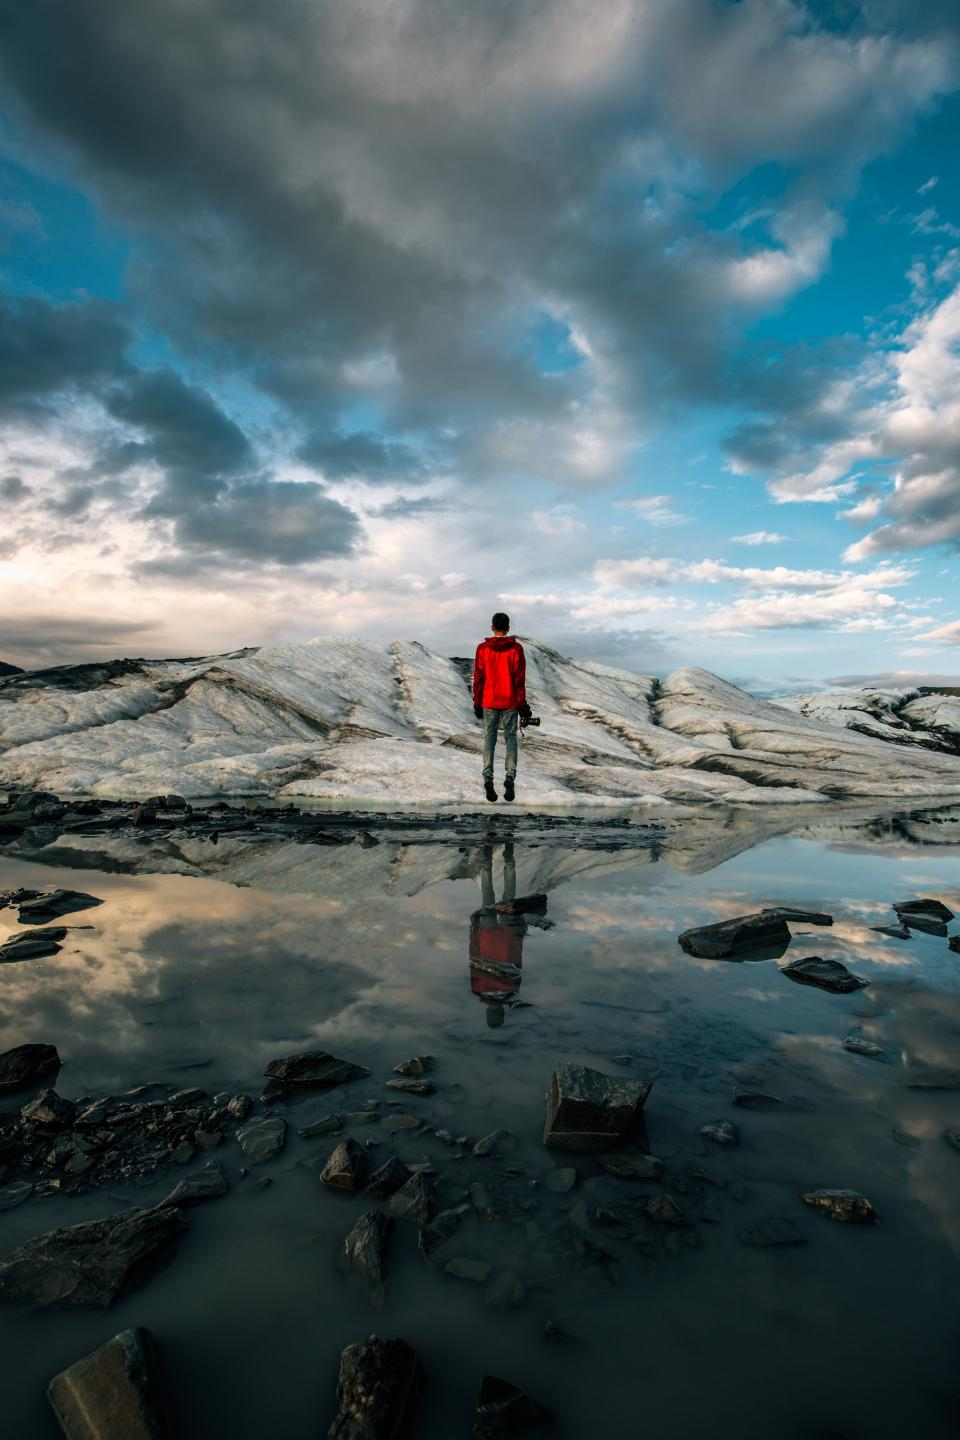 guy, man, male, people, back, contemplate, stand, nature, landscape, rocks, slabs, water, lake, puddle, reflection, sky, clouds, horizon, travel, trek, photography